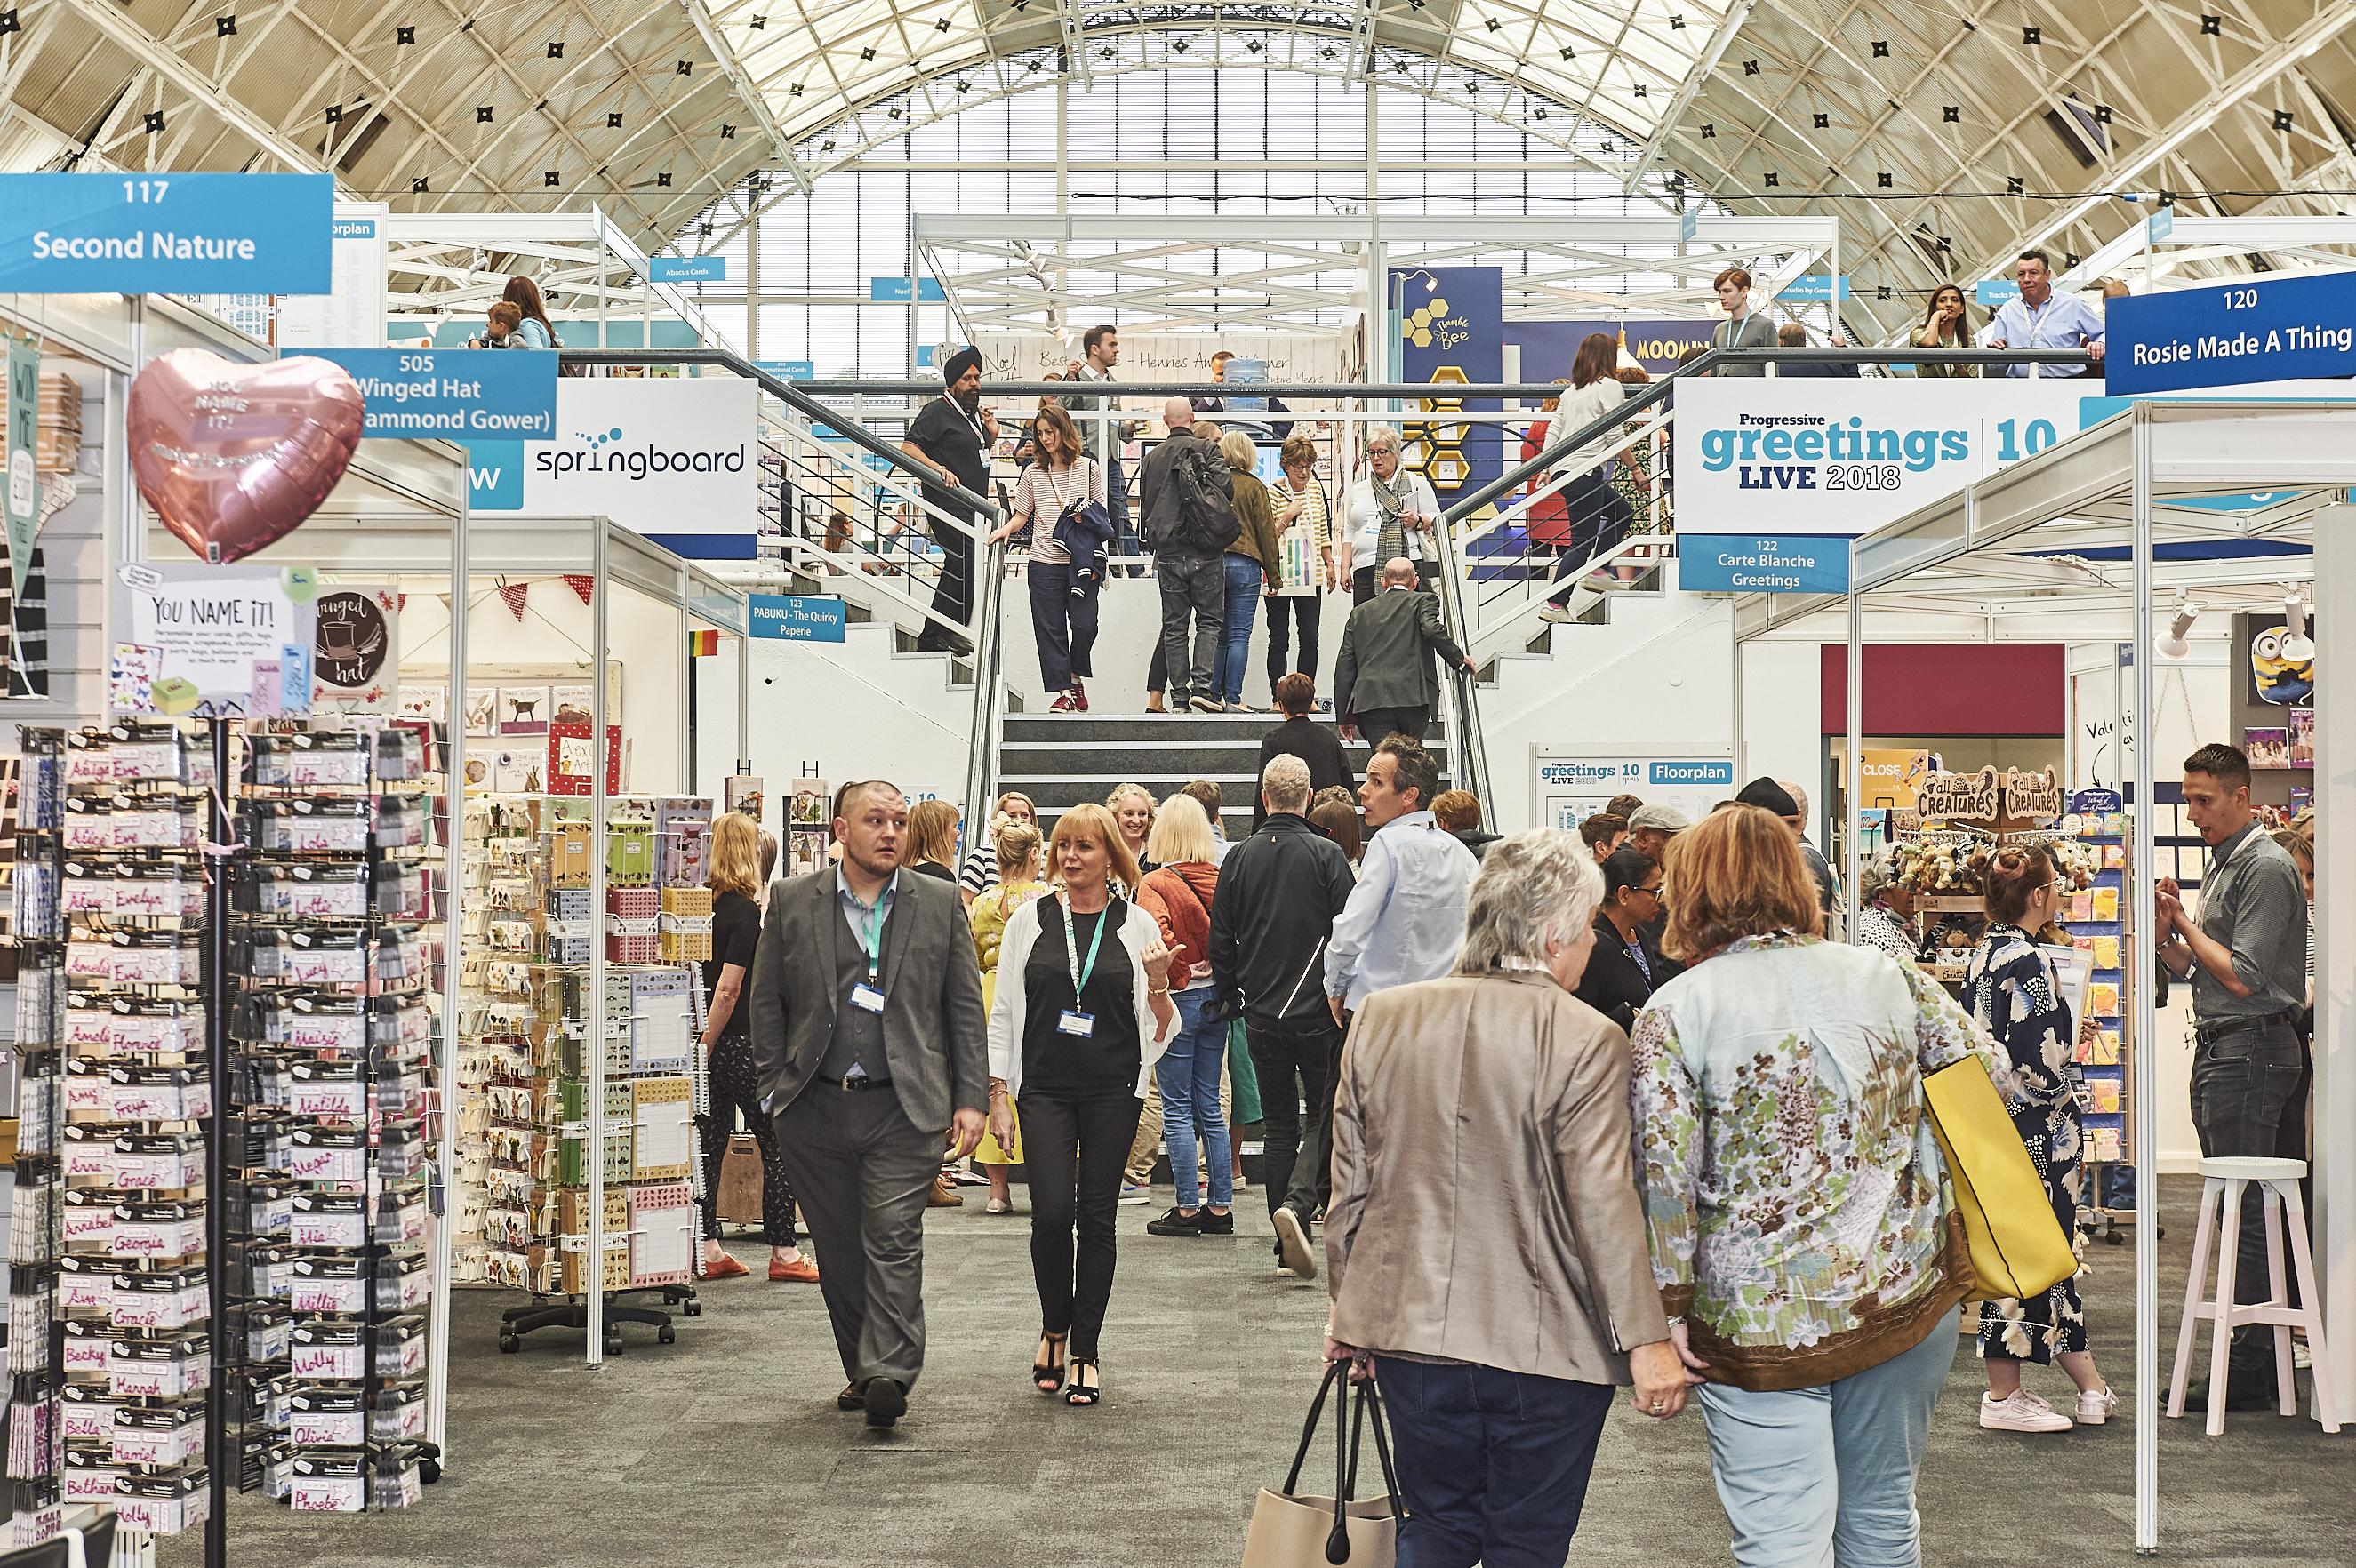 Above: Even with seven months to go, the exhibitor line-up for PG Live 2019 looks really strong.